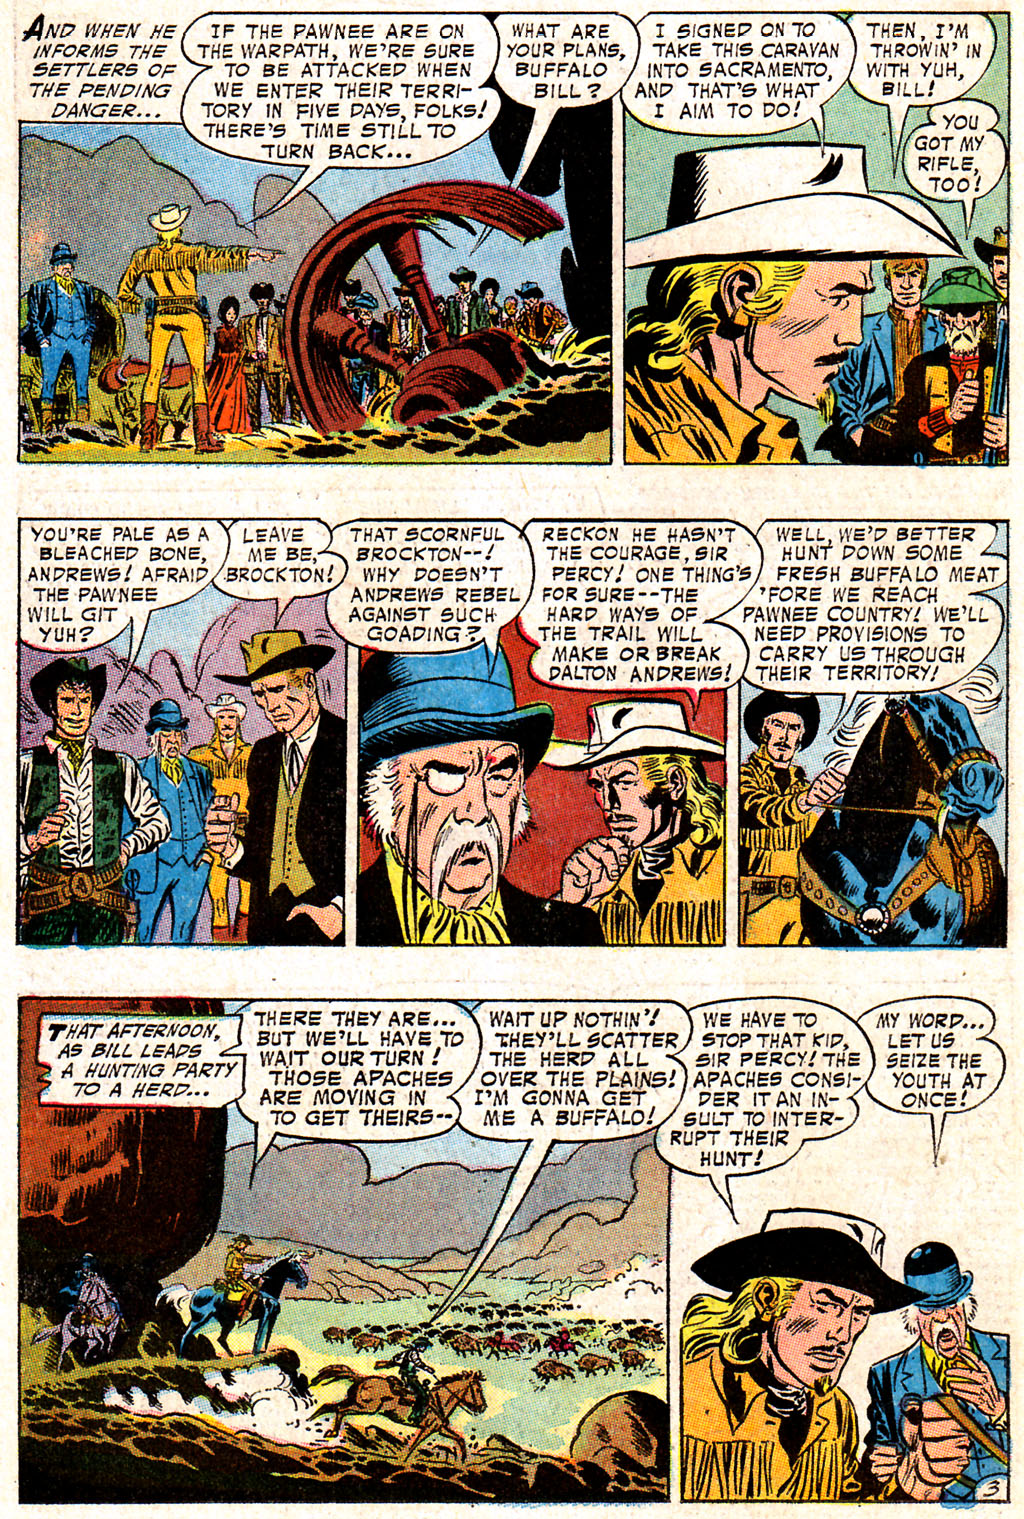 Read online All-Star Western (1970) comic -  Issue #7 - 30